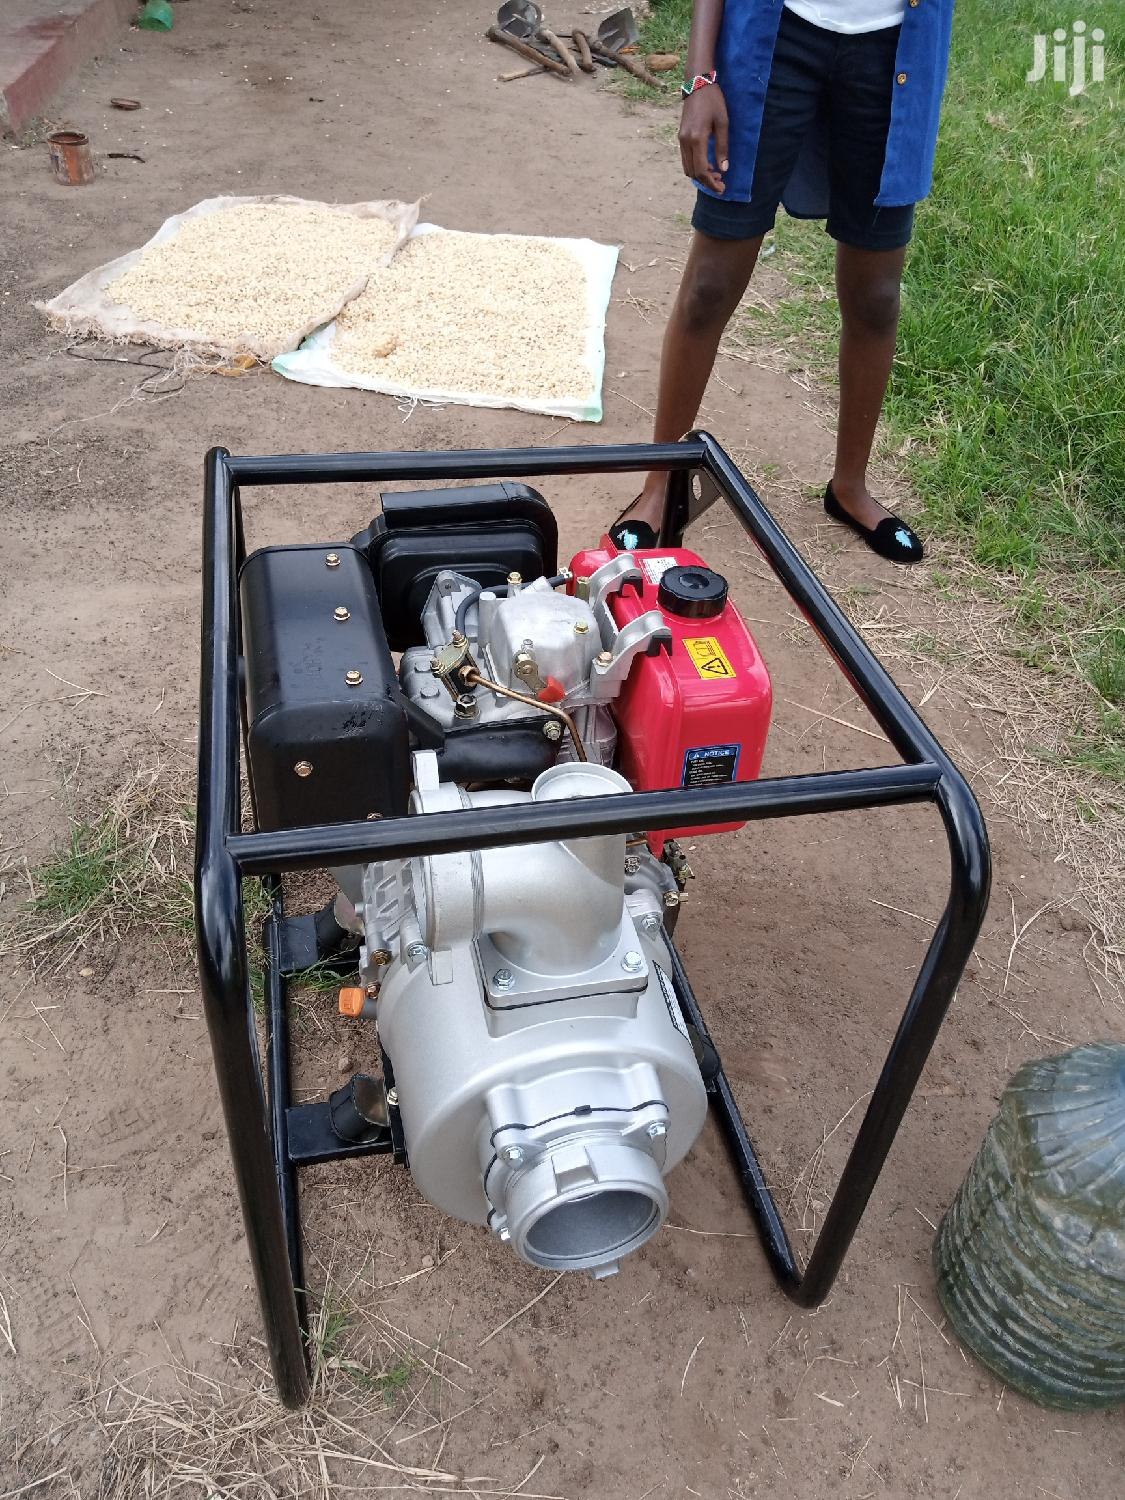 Water Pump Machine 4"